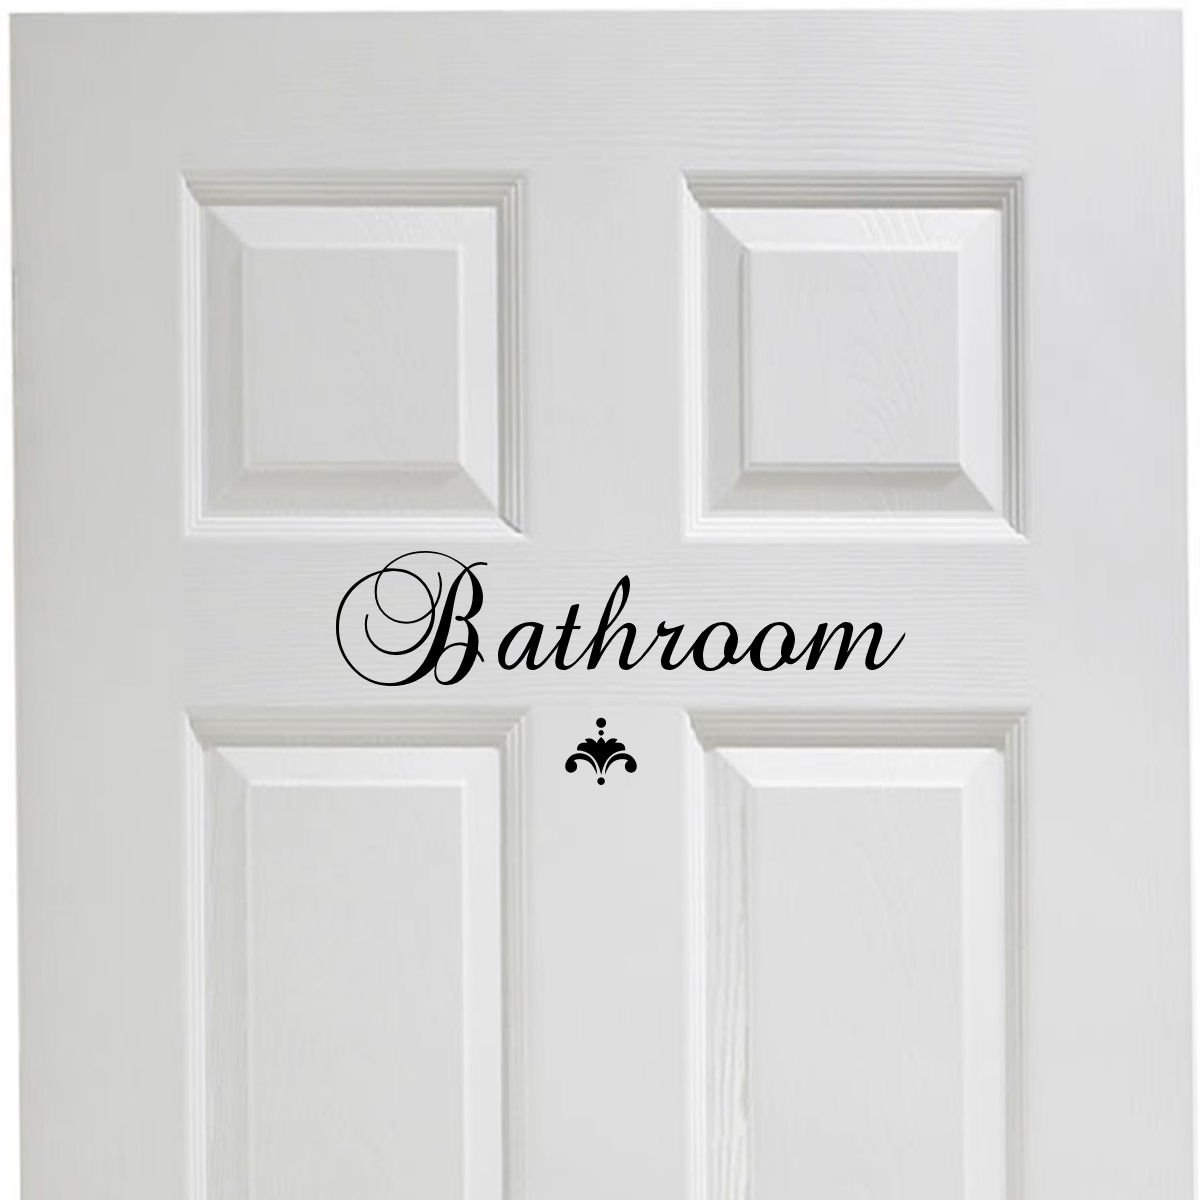 Bathroom Vinyl Decal Decor Vinyl Wall Decal Great House Warming Gift Powder Room Wall Decor © Decal the Walls by Decal the Walls